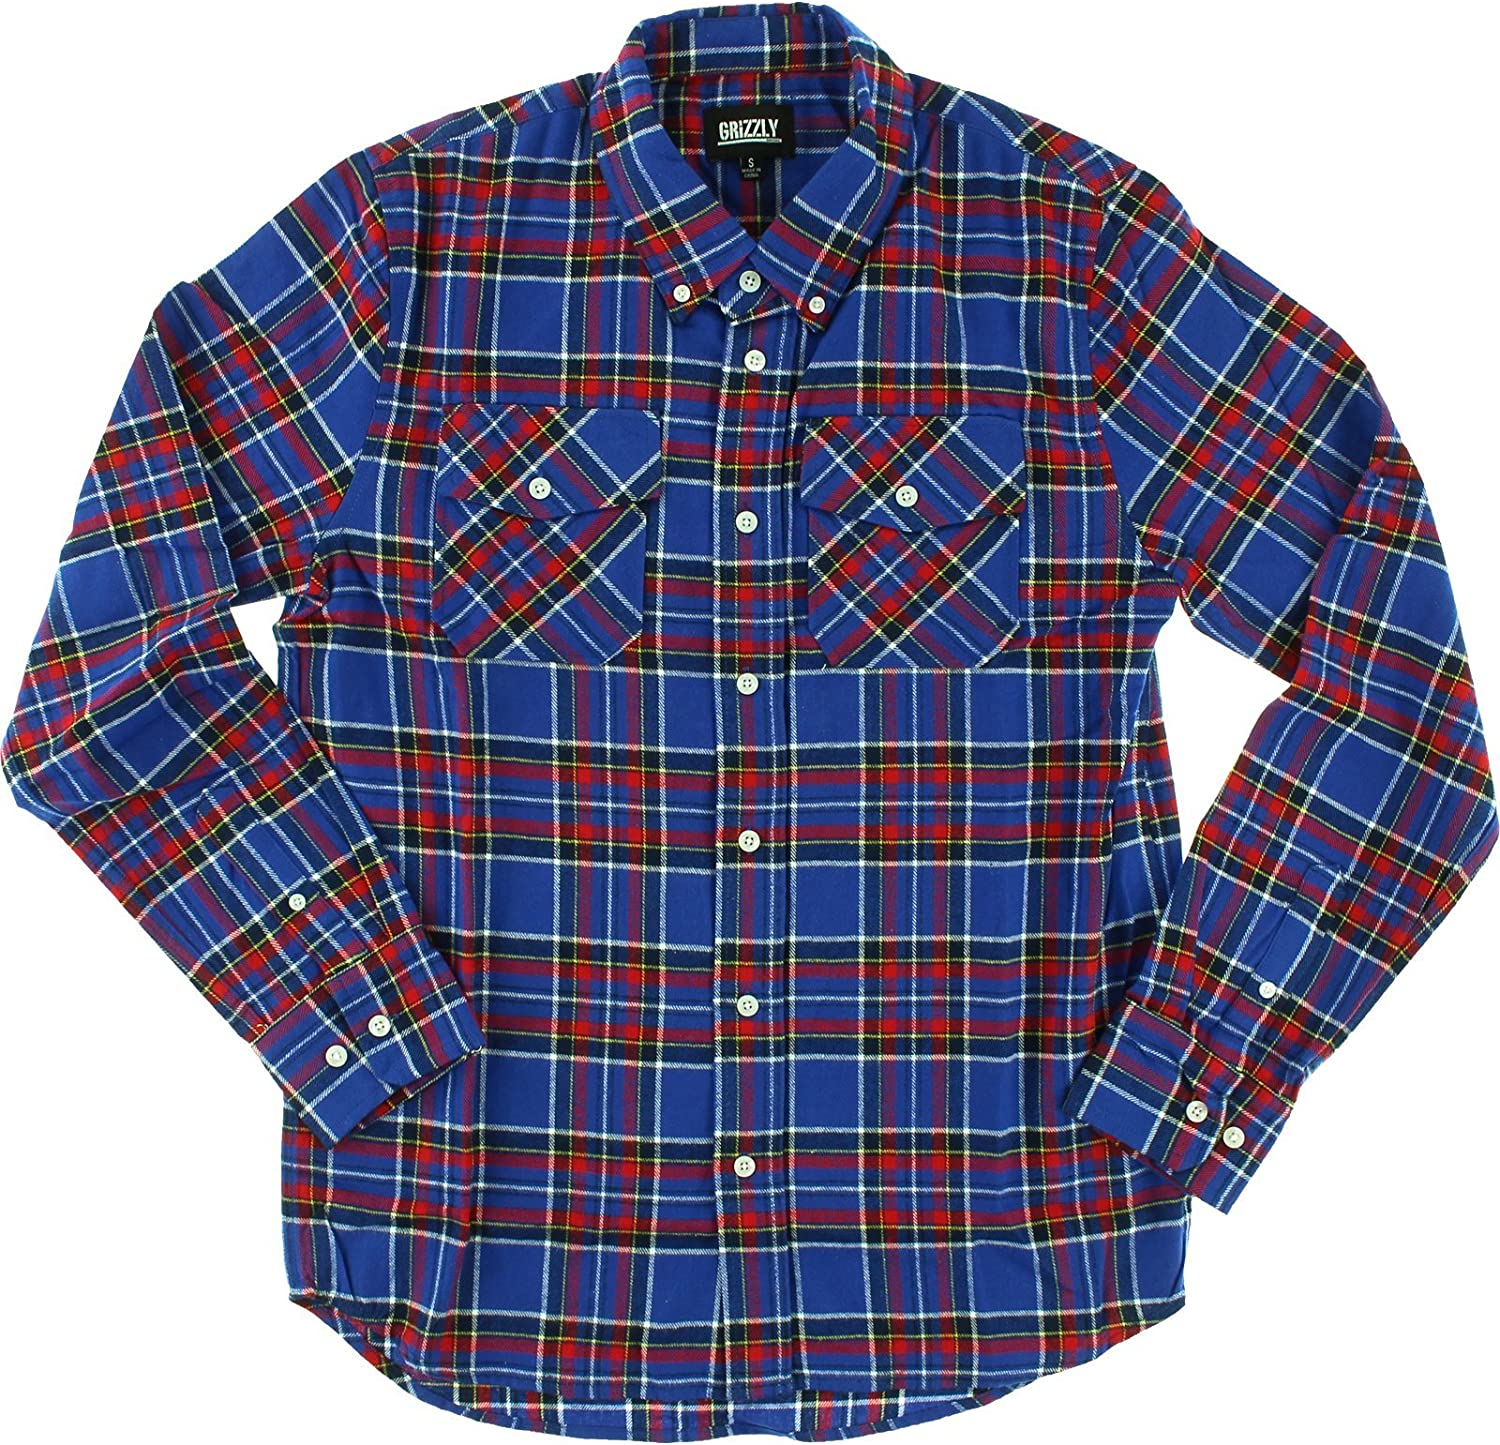 Size Grizzly Tundra Button-Up Long Sleeve Shirt LARGE in Blue Plaid